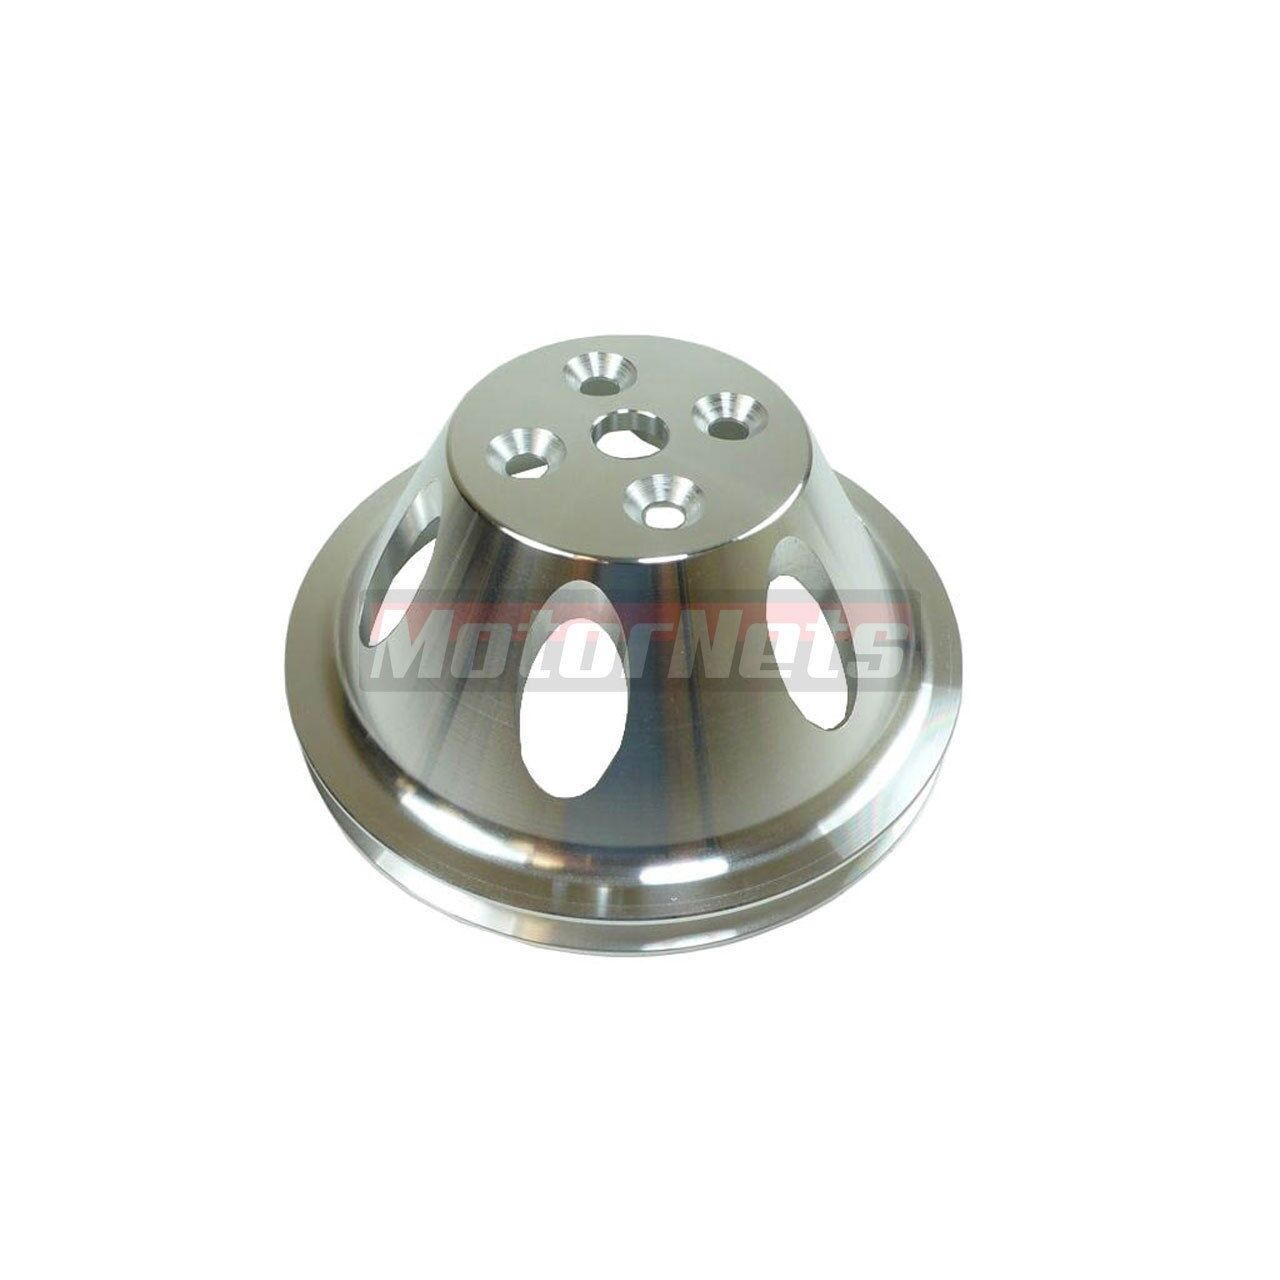 Polished Billet Aluminum BBC Chevy 396-454 Short Water Pump Pulley 1 Groove SWP